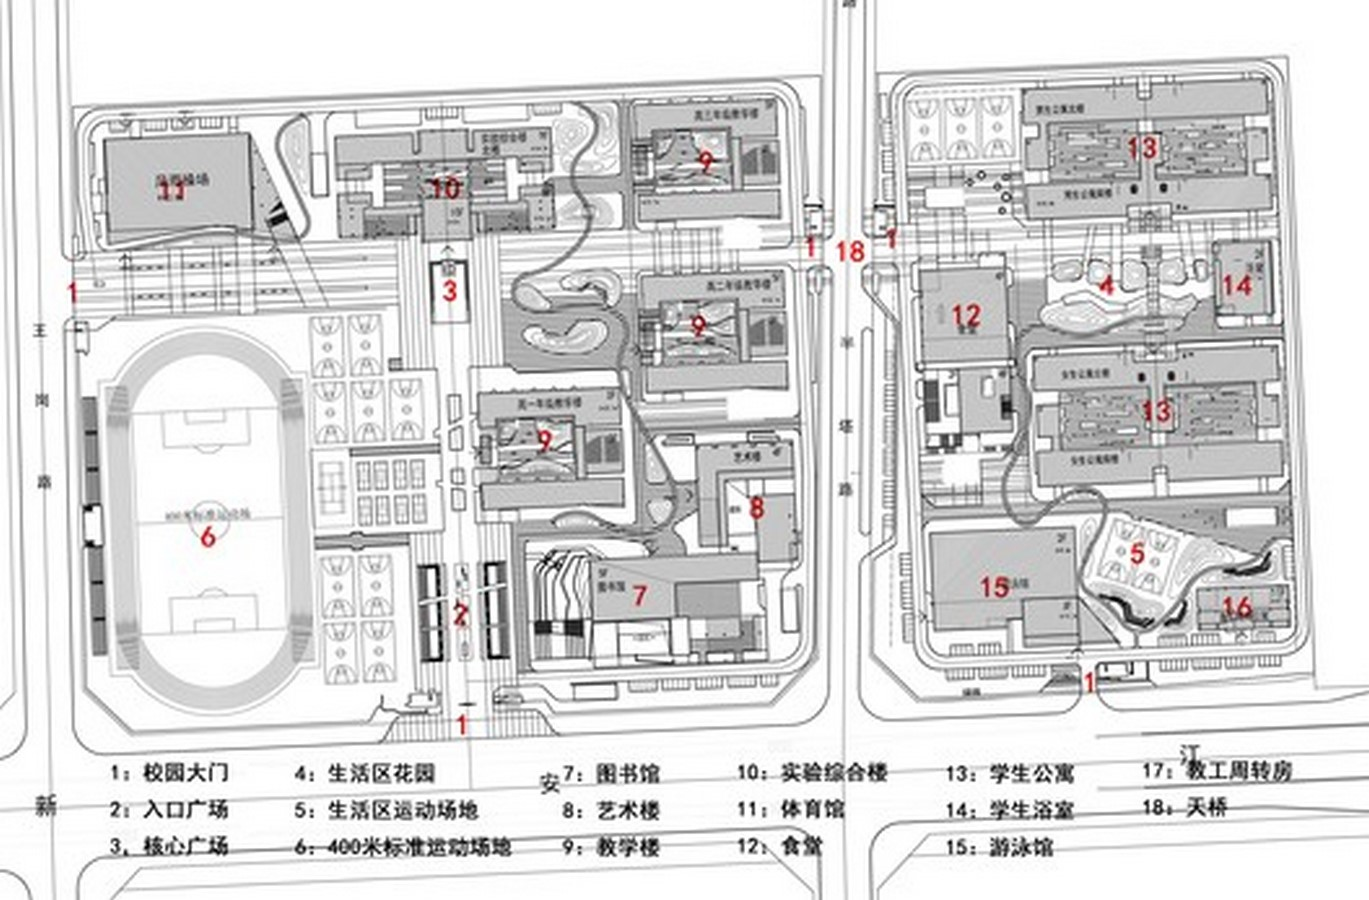 HeFei No.10 Secondary School - Sheet4